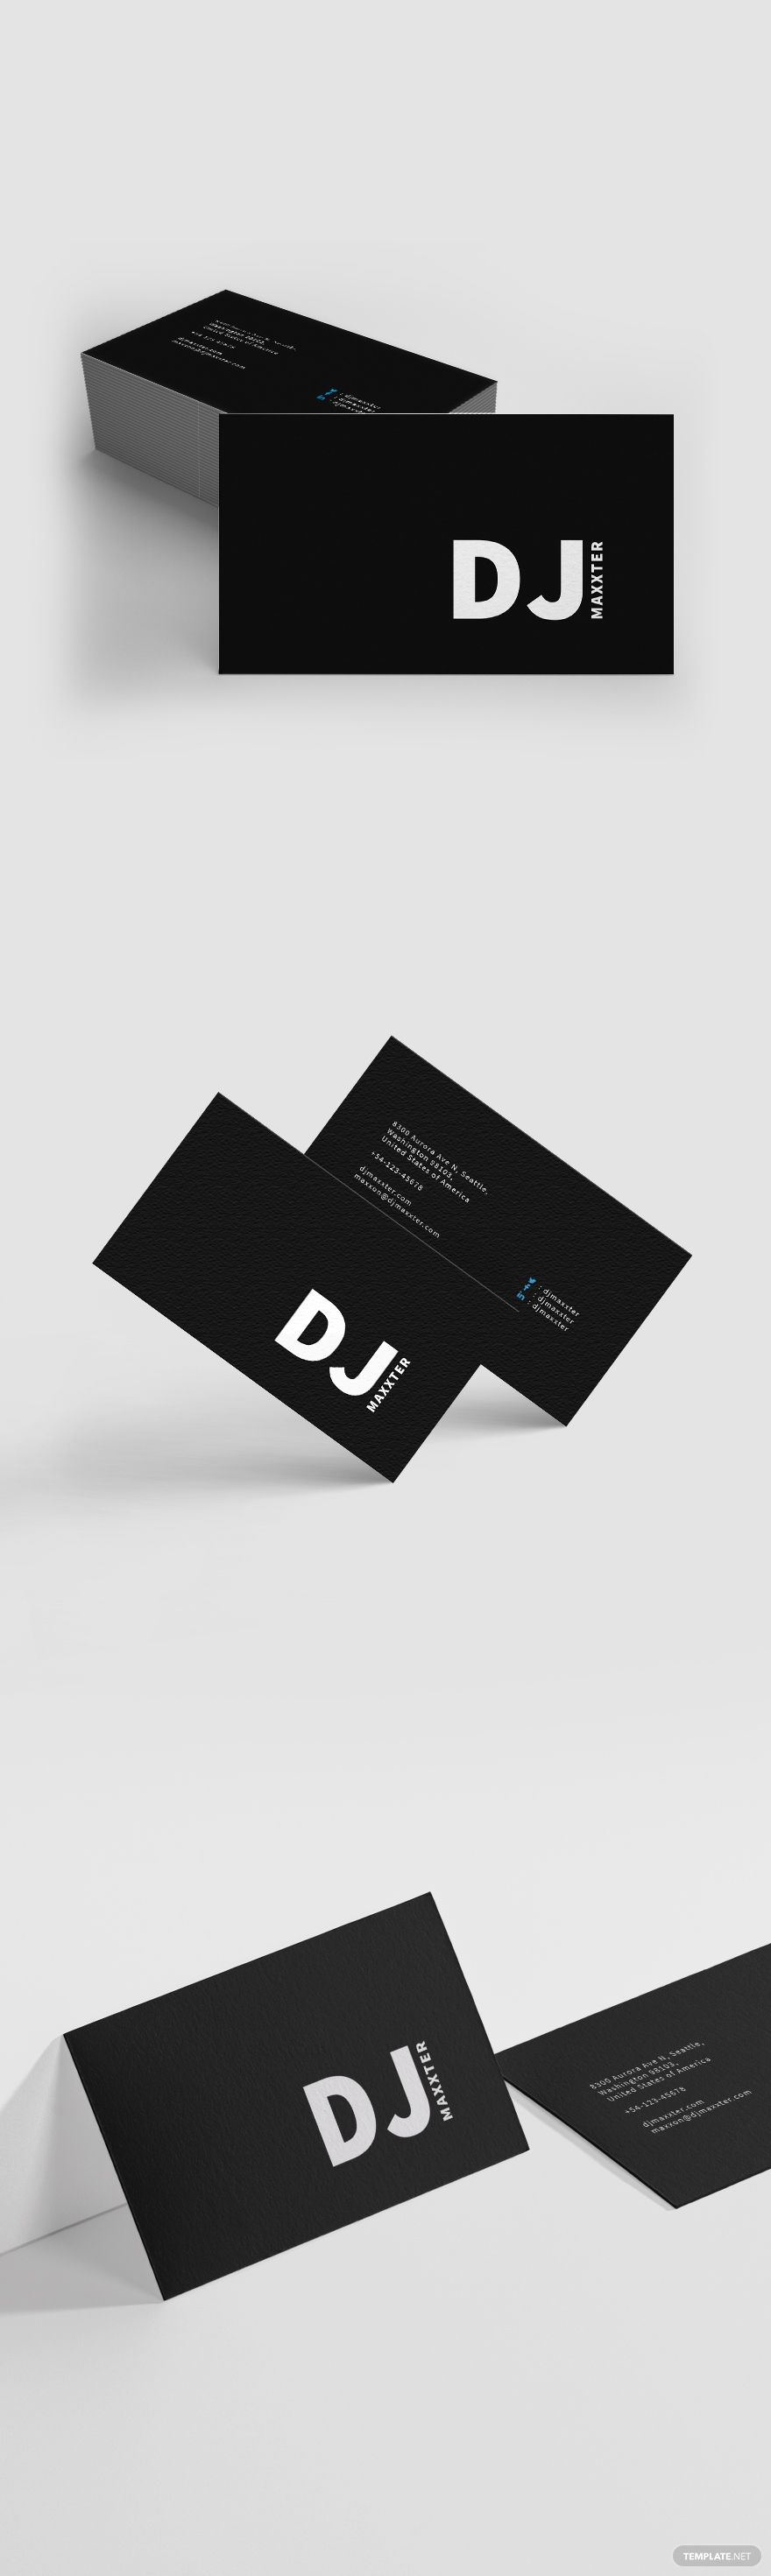 Modern Dj Business Card Template Word Doc Psd Apple Mac Pages Publisher Illustrator Dj Business Cards Business Card Template Word Business Card Template